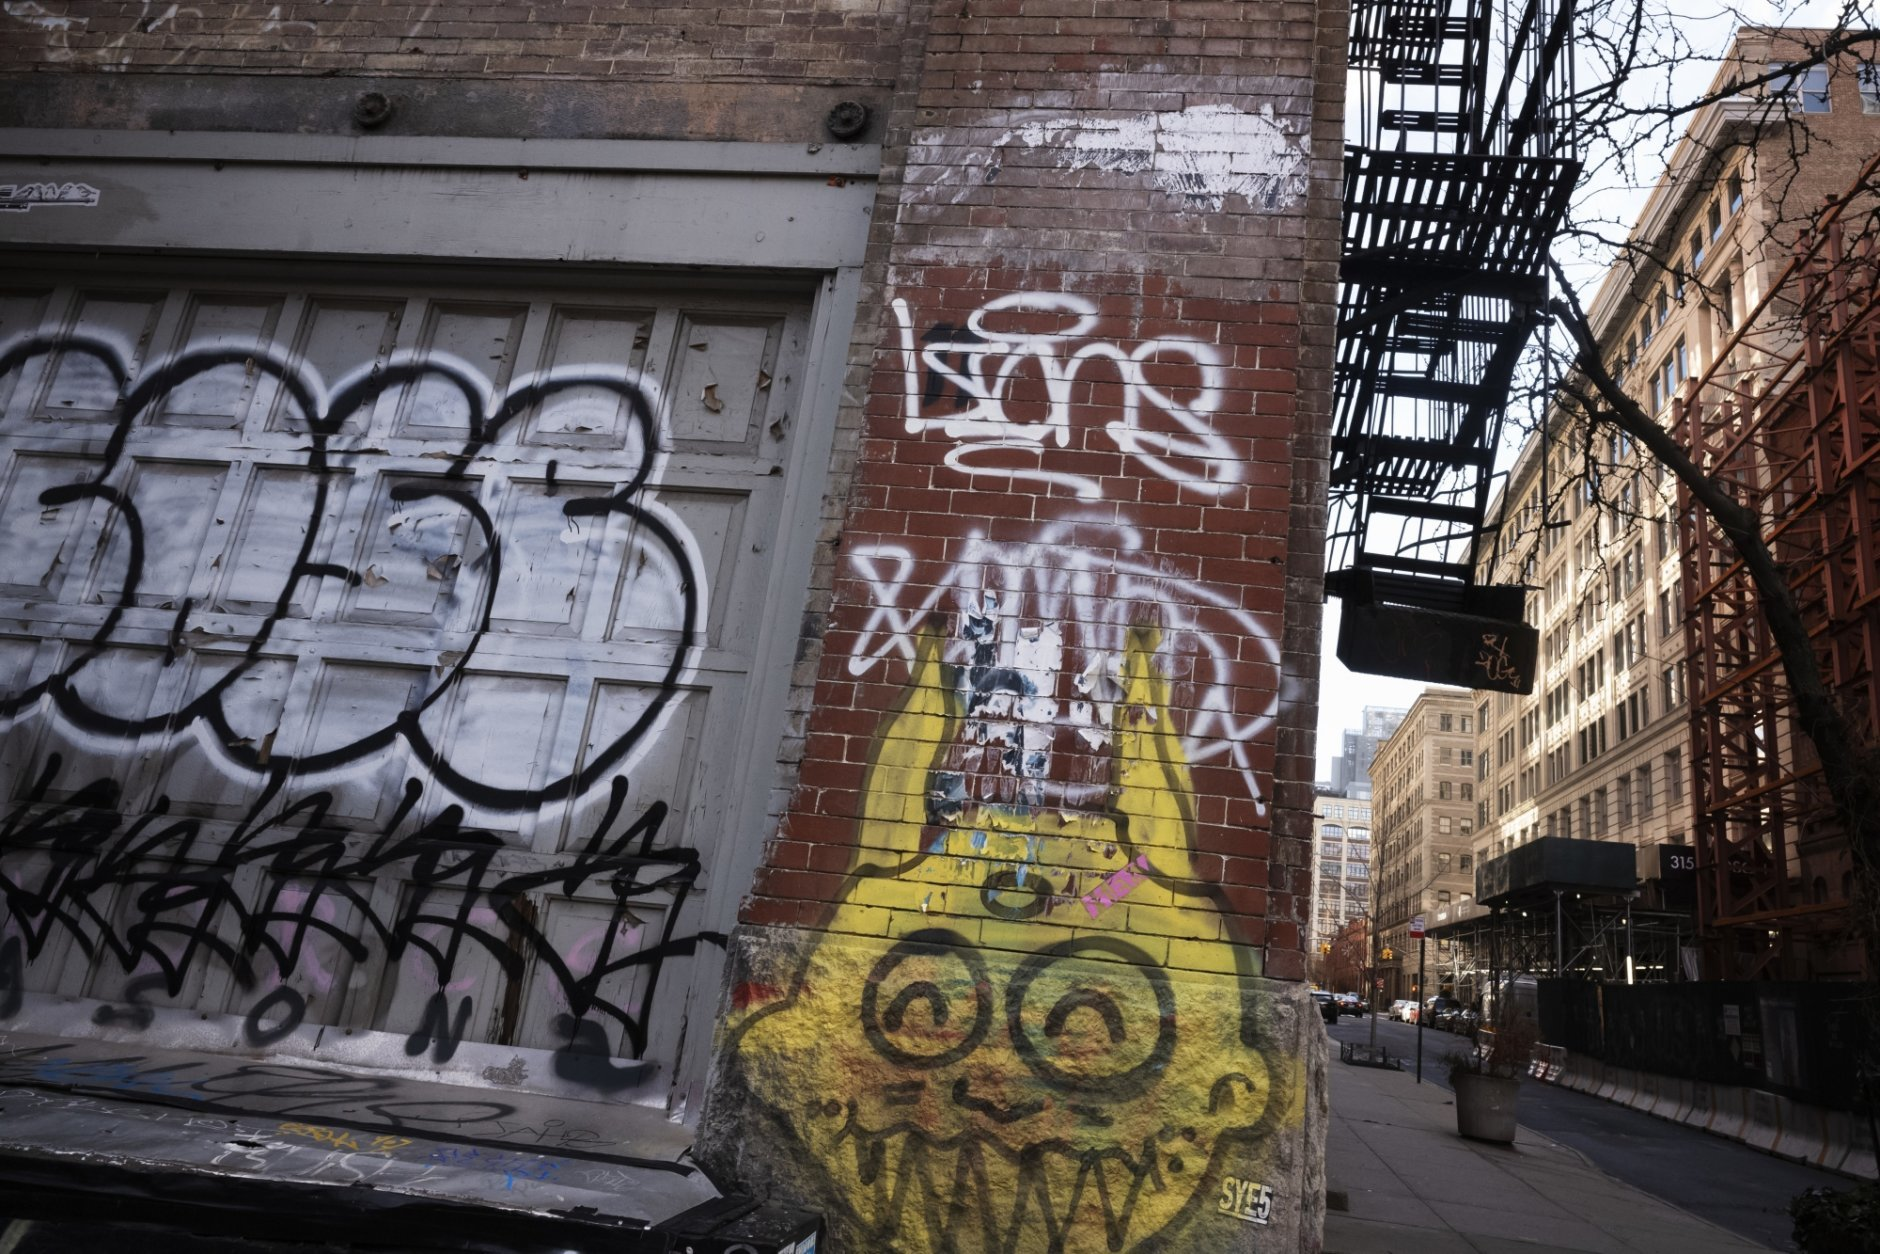 A building, right, that has been chosen by Google as part of its expansion plans is near a graffiti-covered wall, Monday, Dec. 17, 2018, in New York. Google is spending more than $1 billion on a new campus along the Hudson River that will allow it to double the number of people it already employs here. (AP Photo/Mark Lennihan)